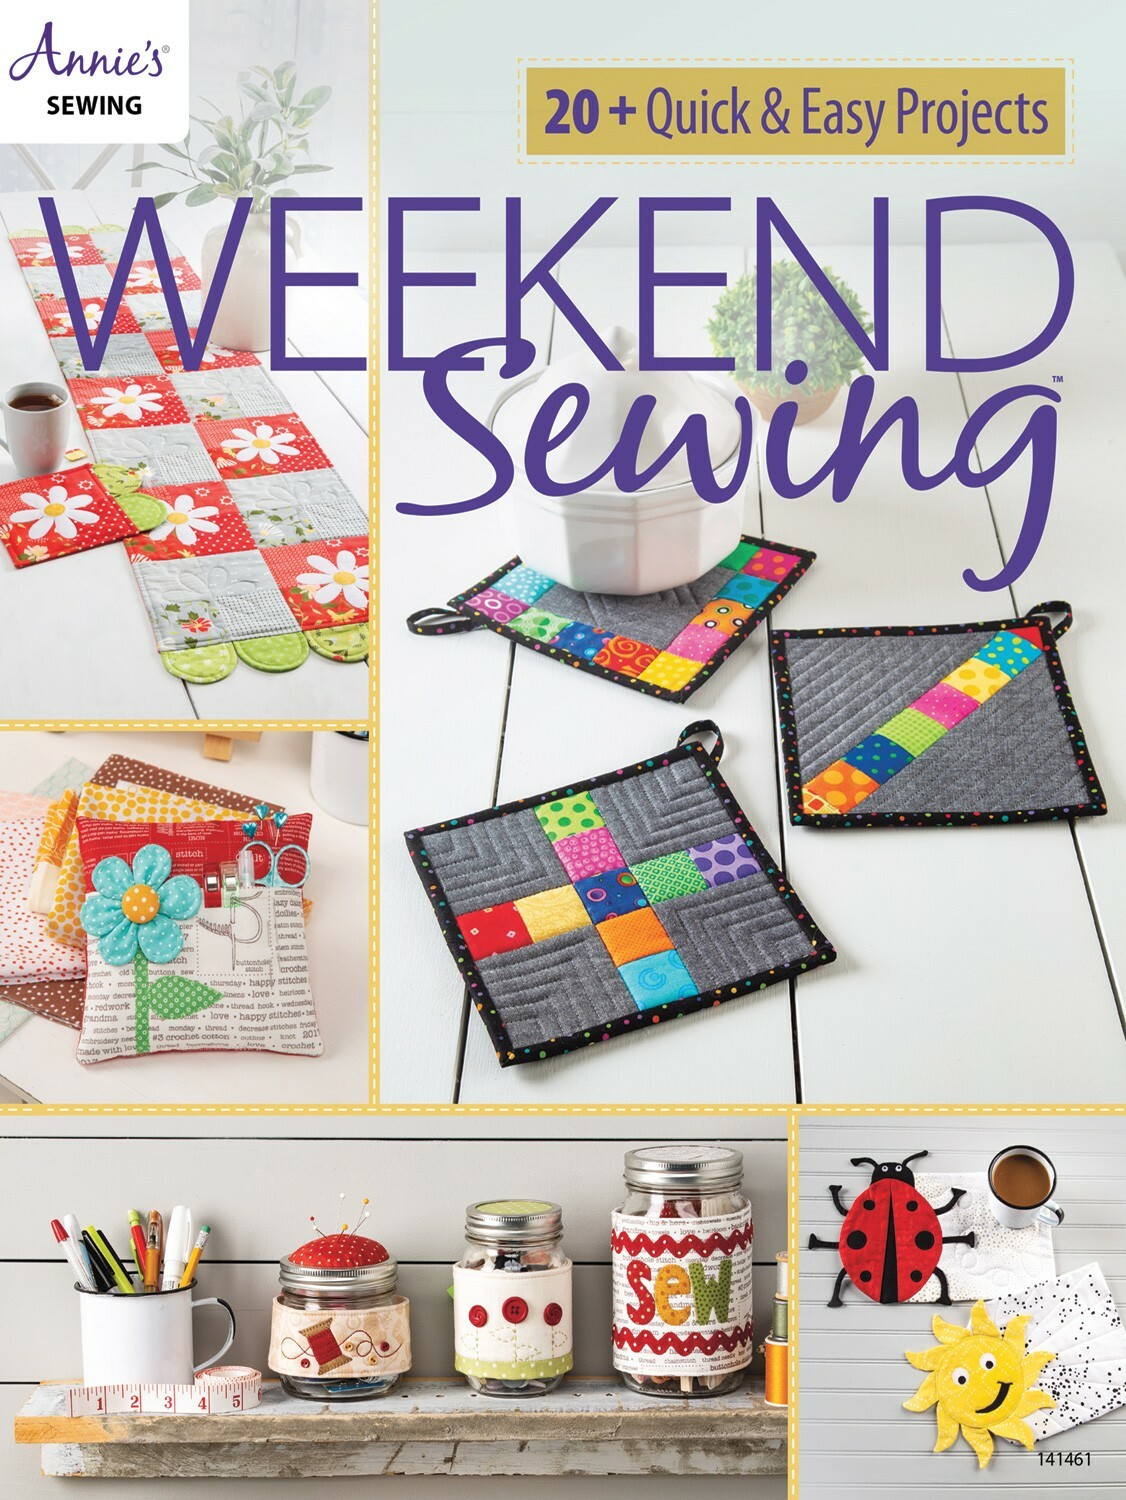 Weekend Sewing Book 56164